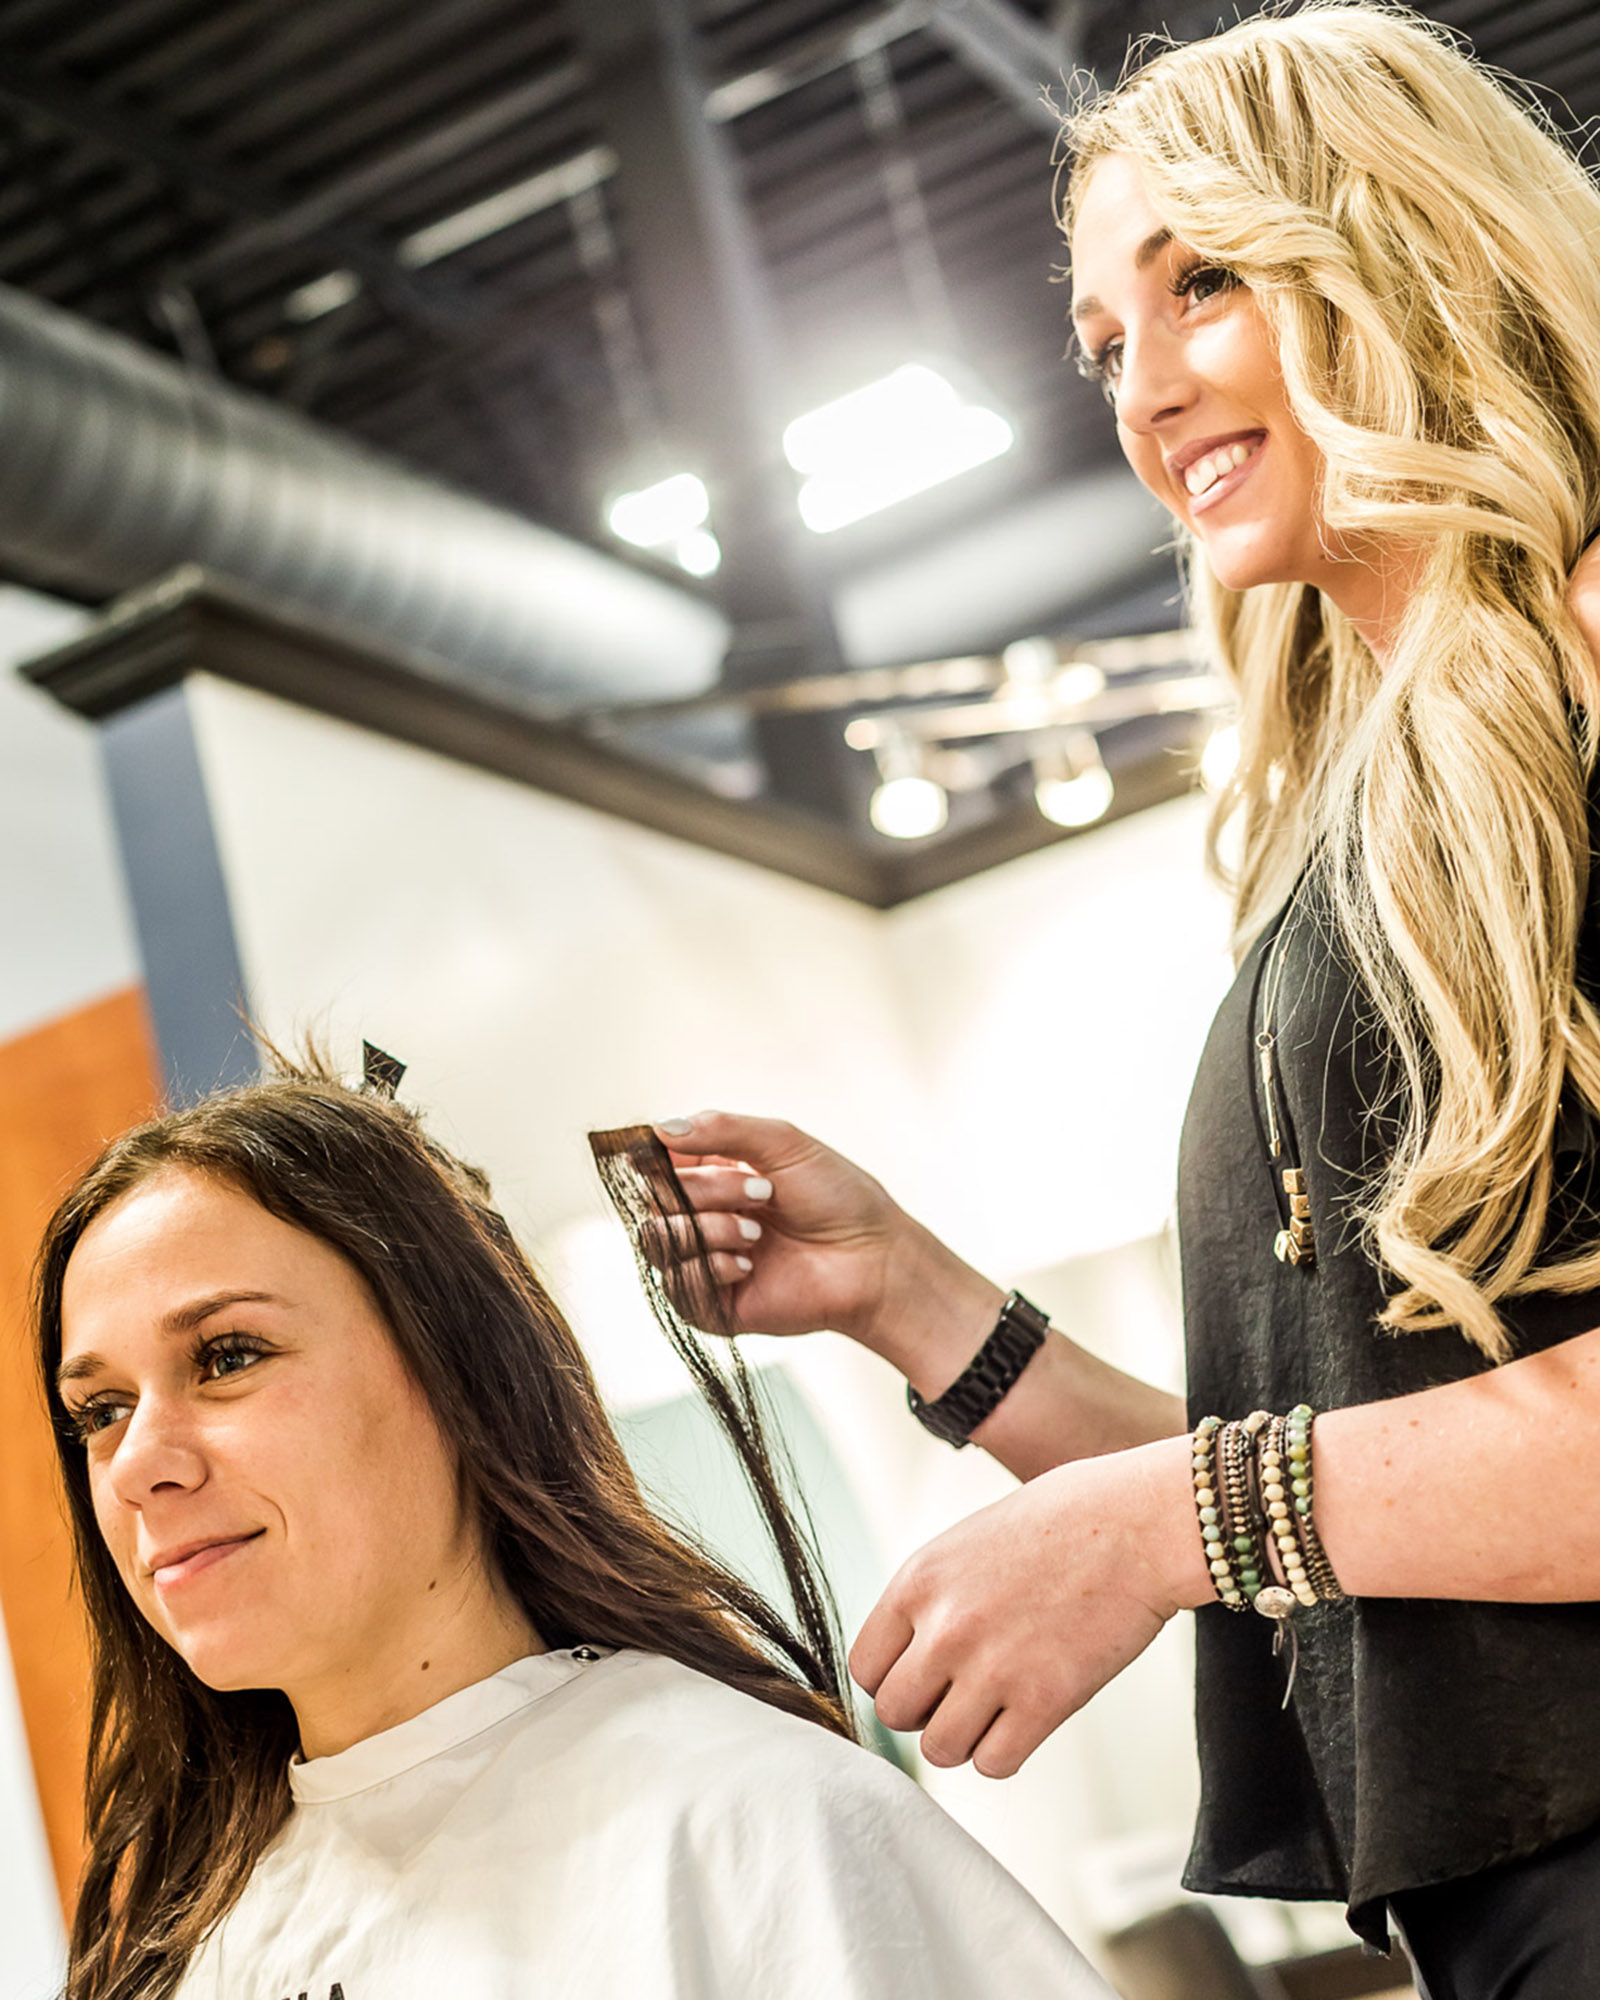 Salon Hair Ania Hair Studio Spa Albany Ny Hair Salon Hair Extensions